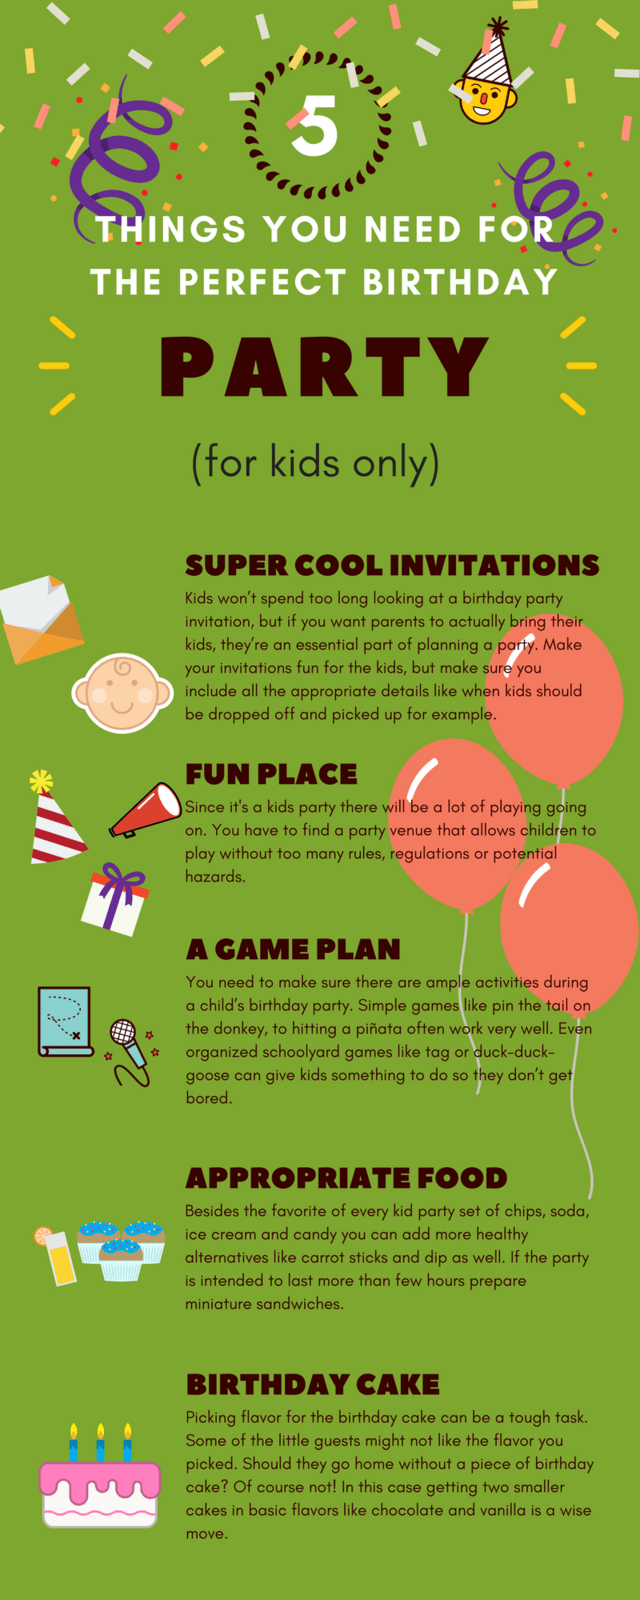 5 Things You Need For The Perfect Birthday Party